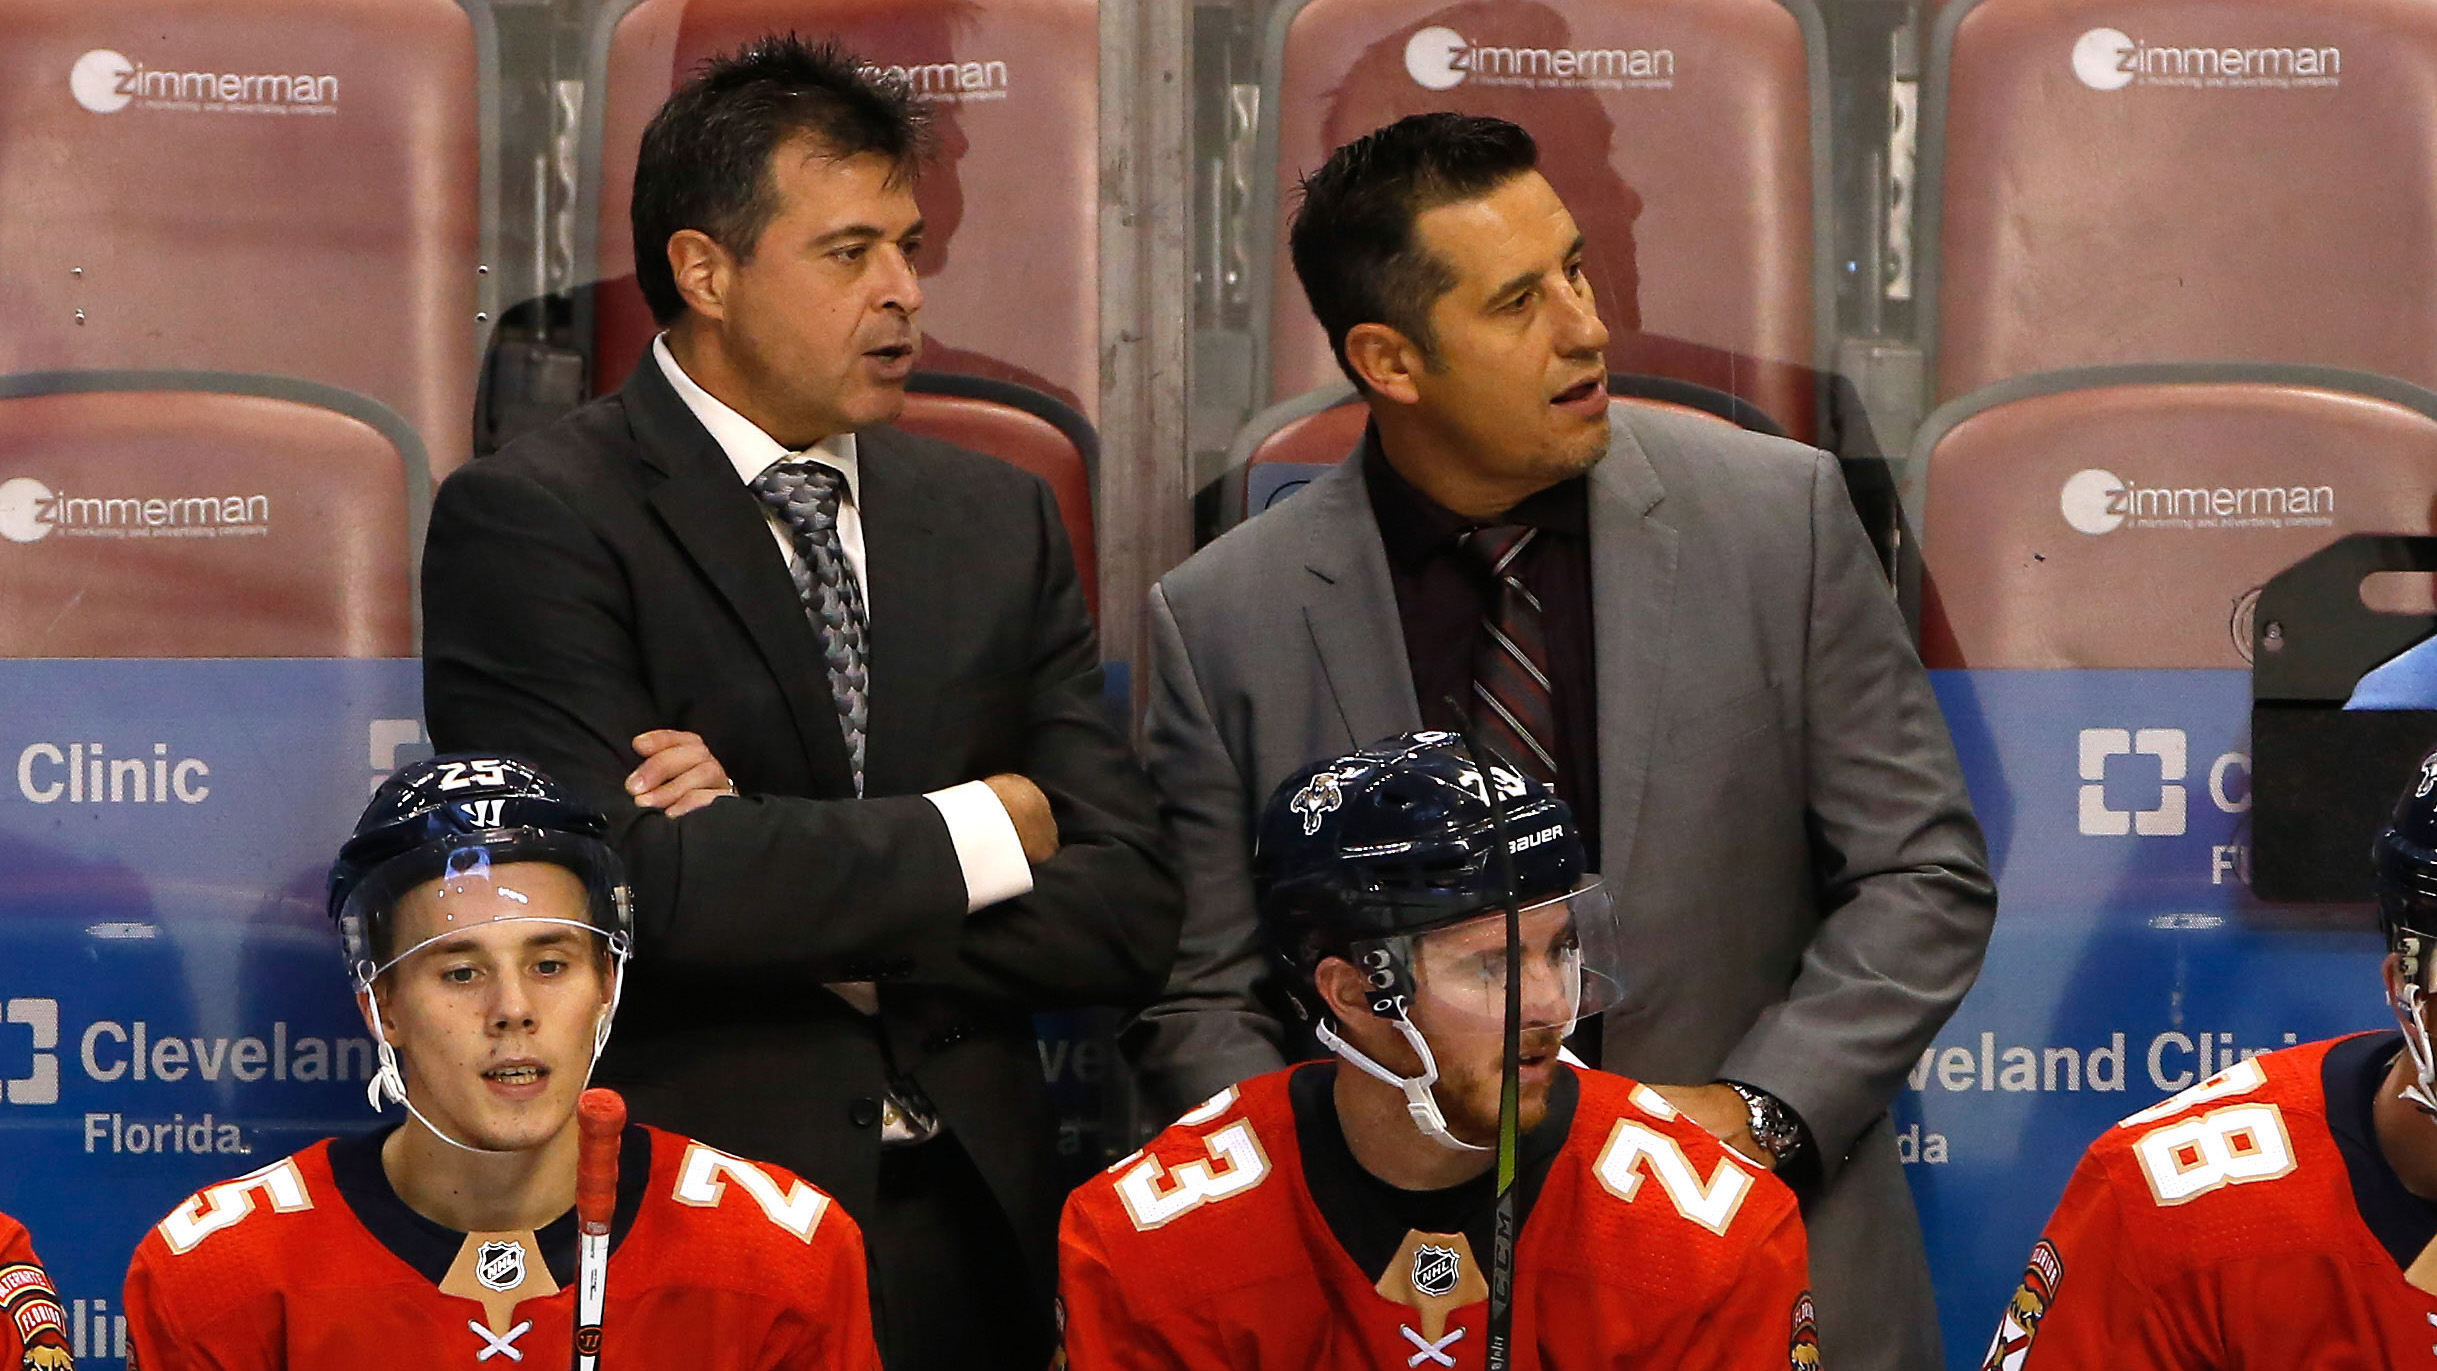 Sep 28, 2017; Sunrise, FL, USA; Florida Panthers head coach Bob Boughner (right) and assistant coach Jack Capuano (left) during the second period of a game against the Tampa Bay Lightning at BB&T Center. Mandatory Credit: Robert Mayer-USA TODAY Sports